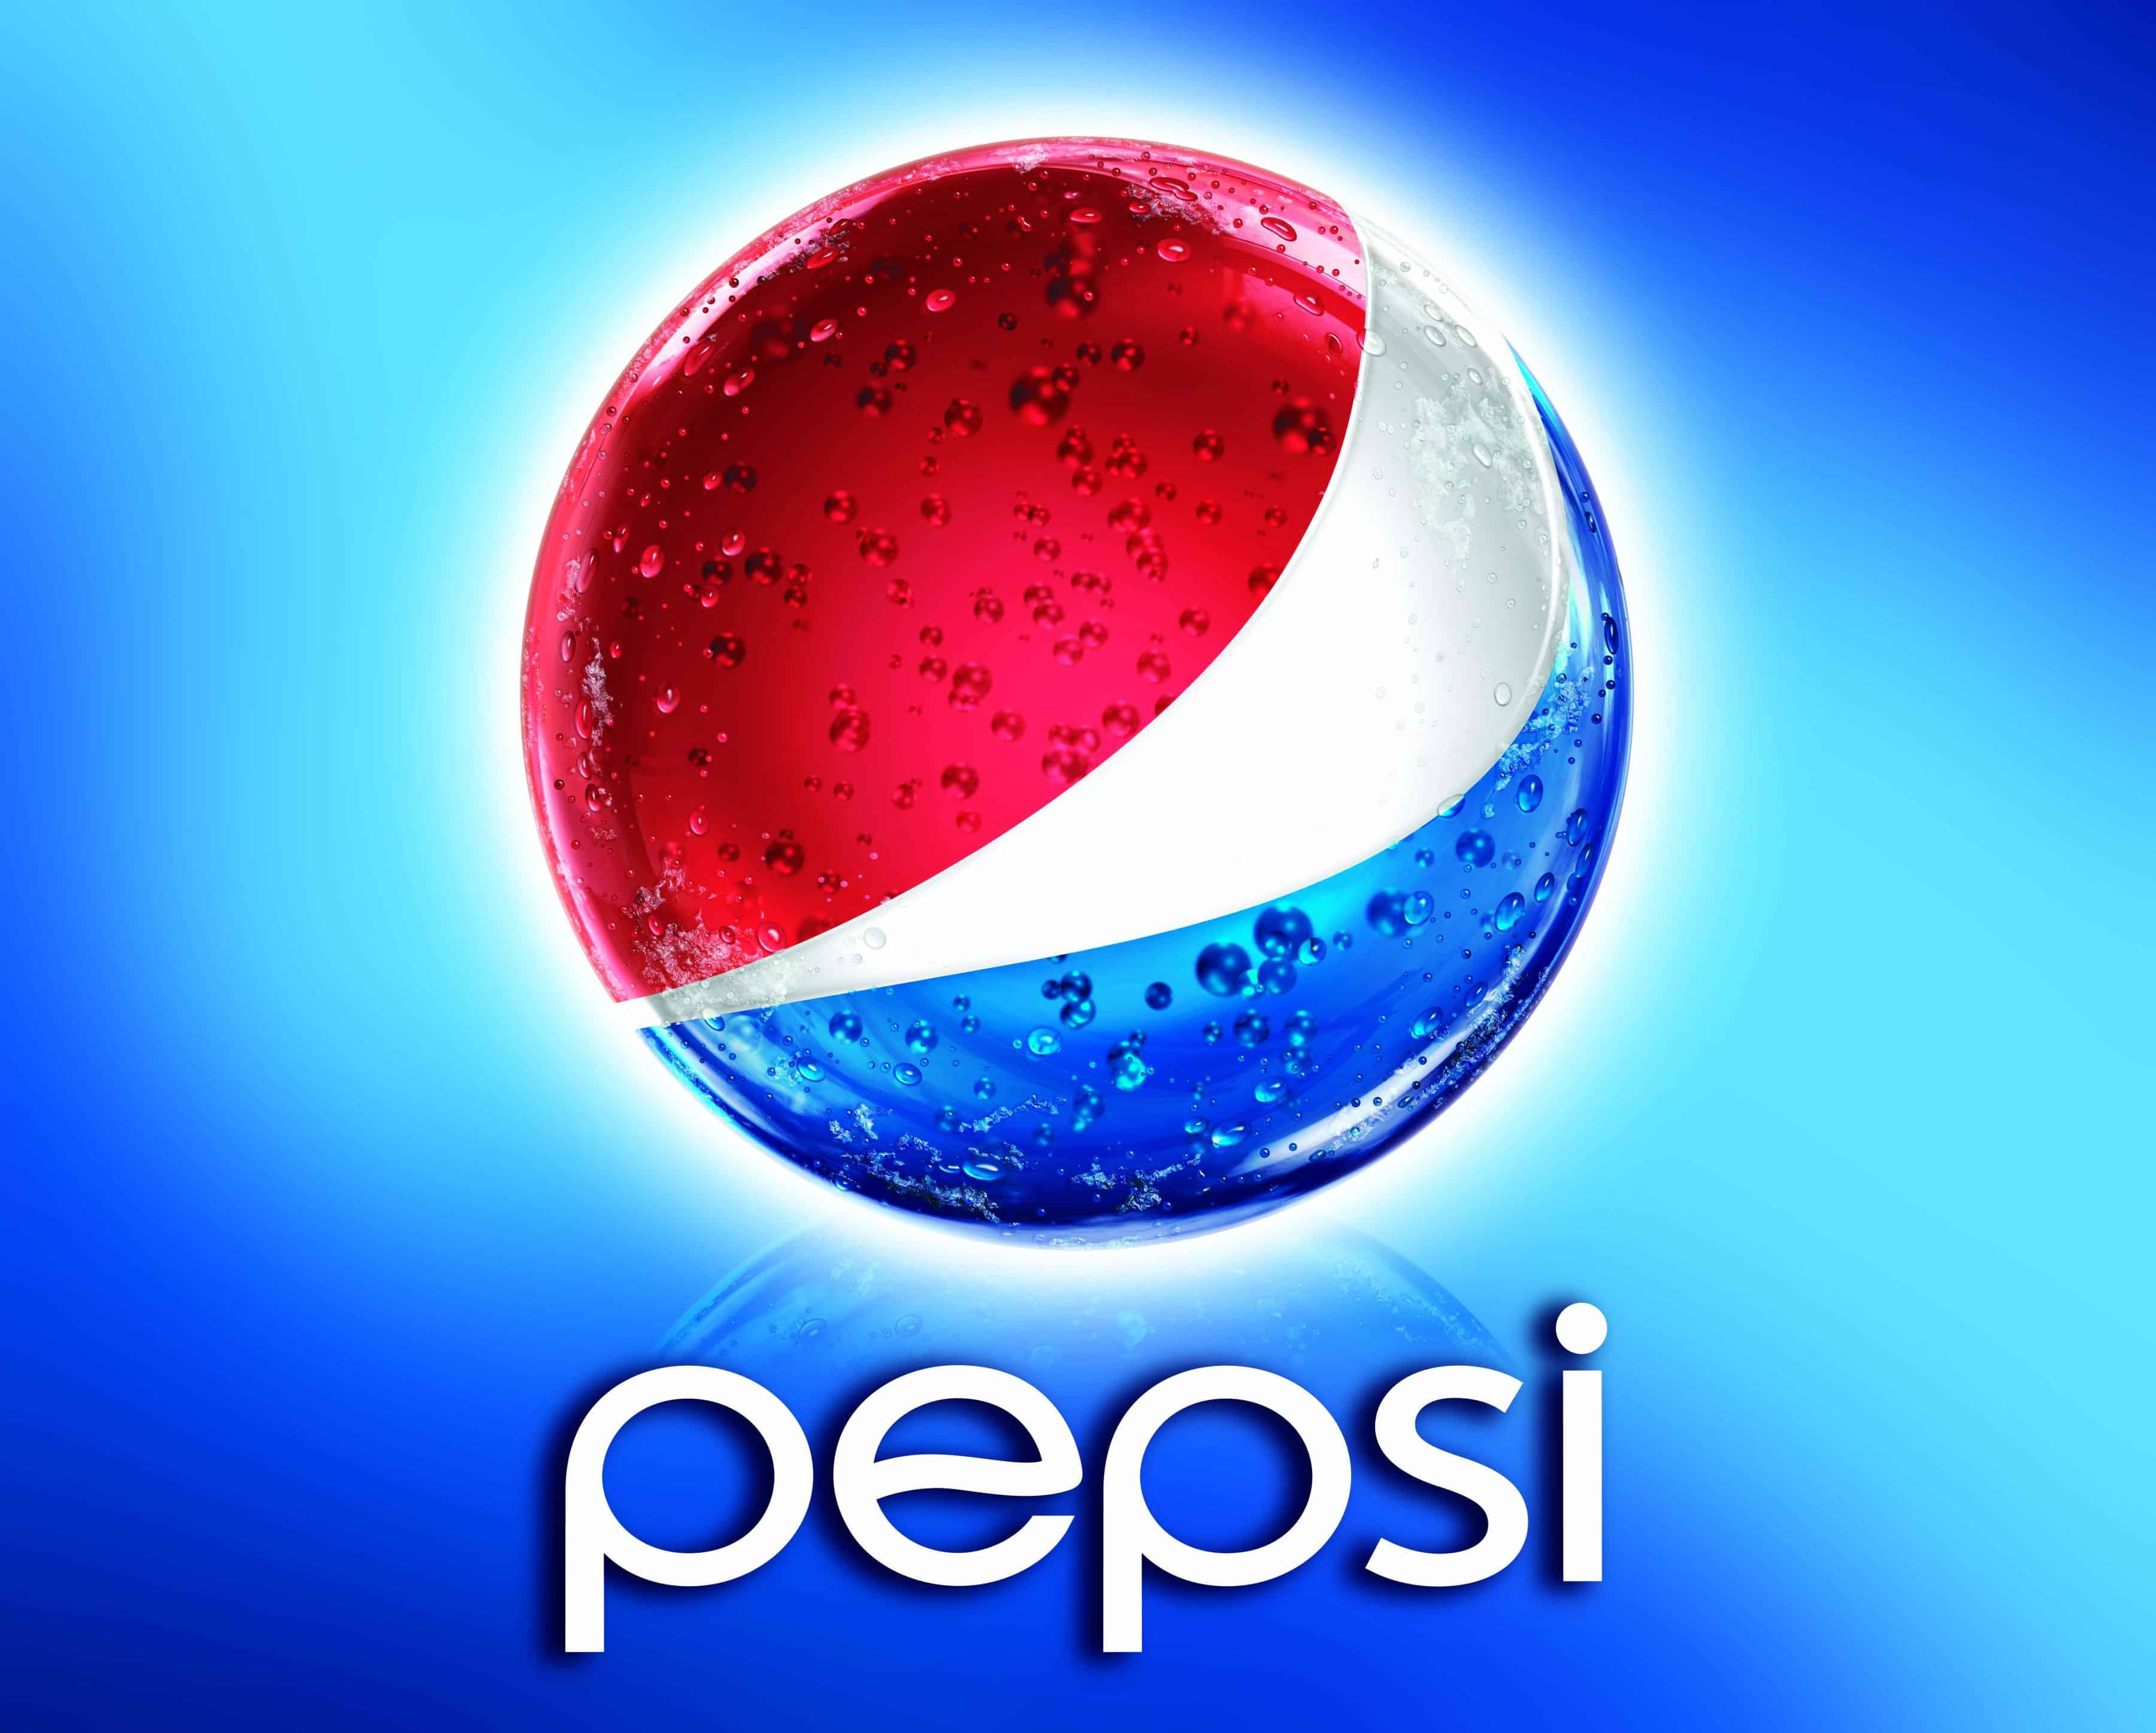 Go Investment 1426682880pepsi Pepsi Invests $500 million in Egypt Egypt News